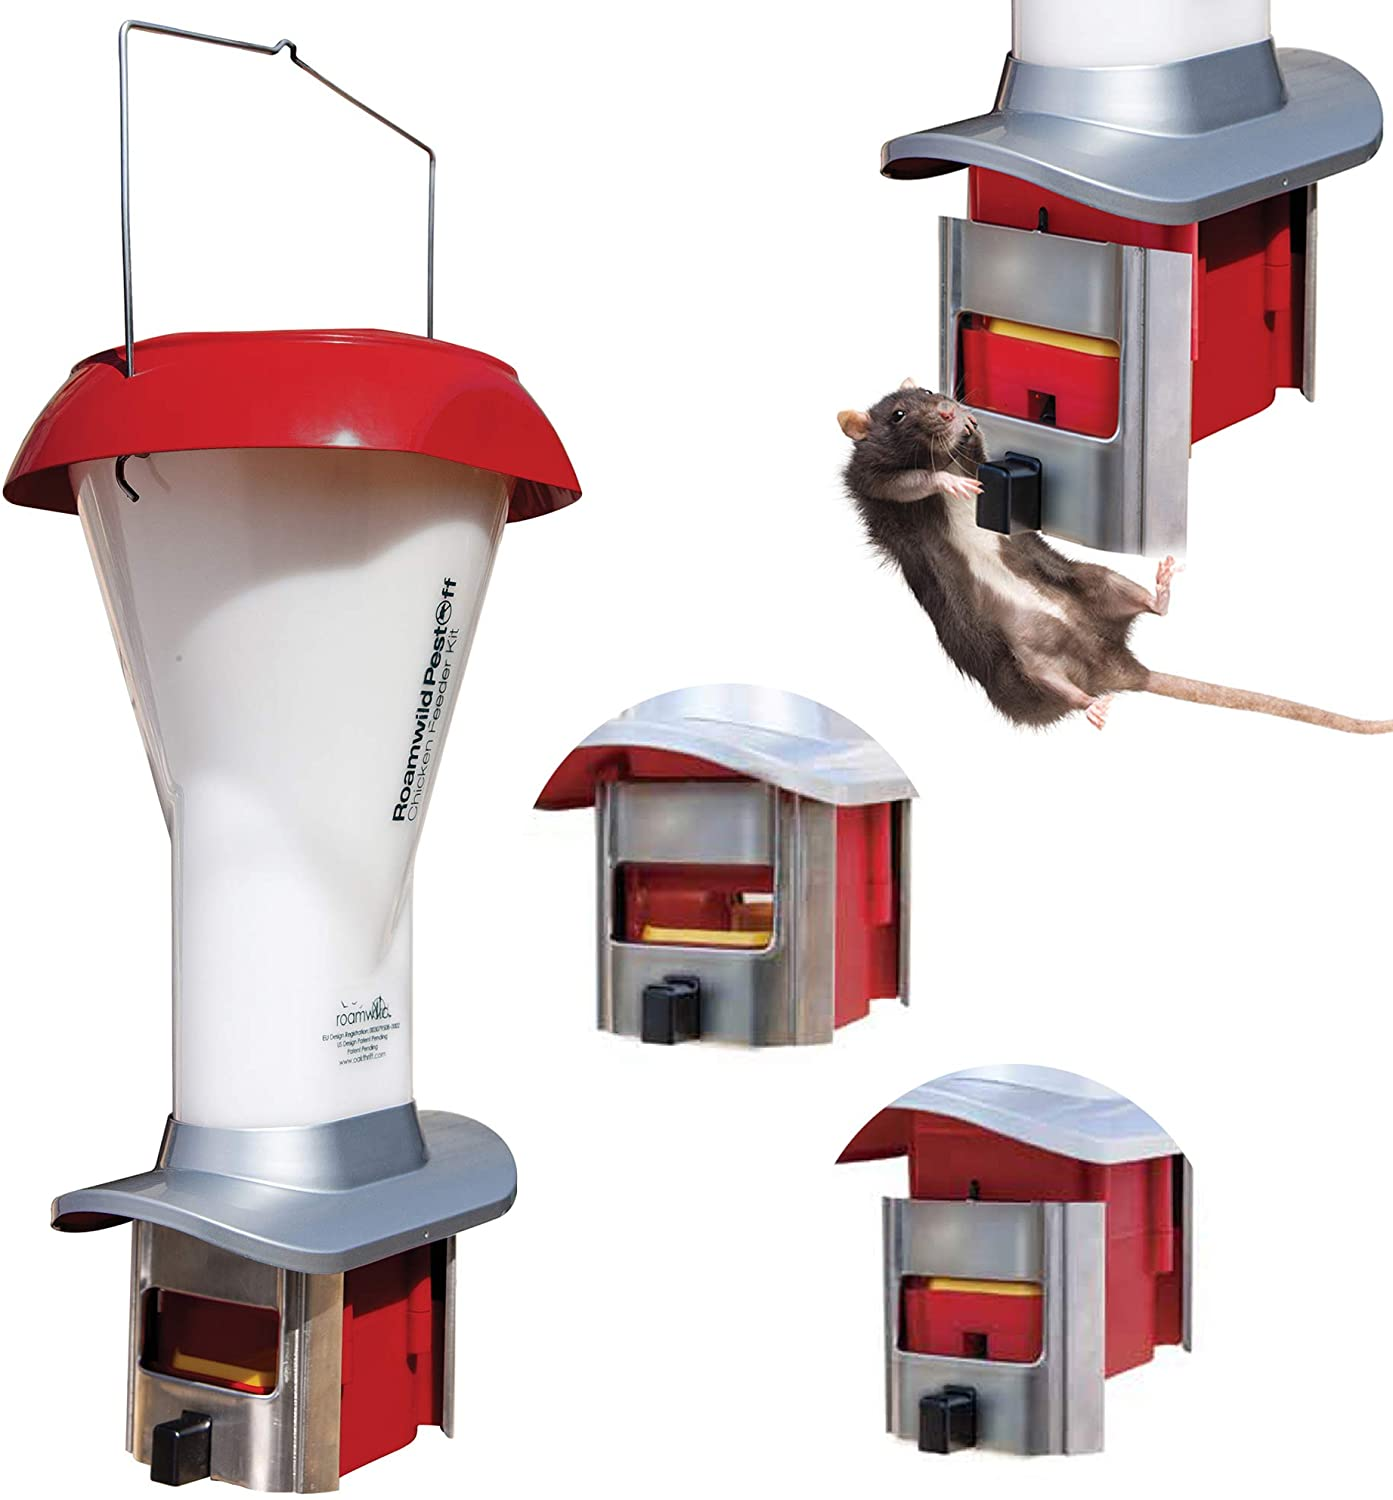 Roamwild Rat Proof Chicken Feeder kit - Rat Proof Poultry Feeder – Weather Proof - 8lbs Capacity - NEW PRODUCT